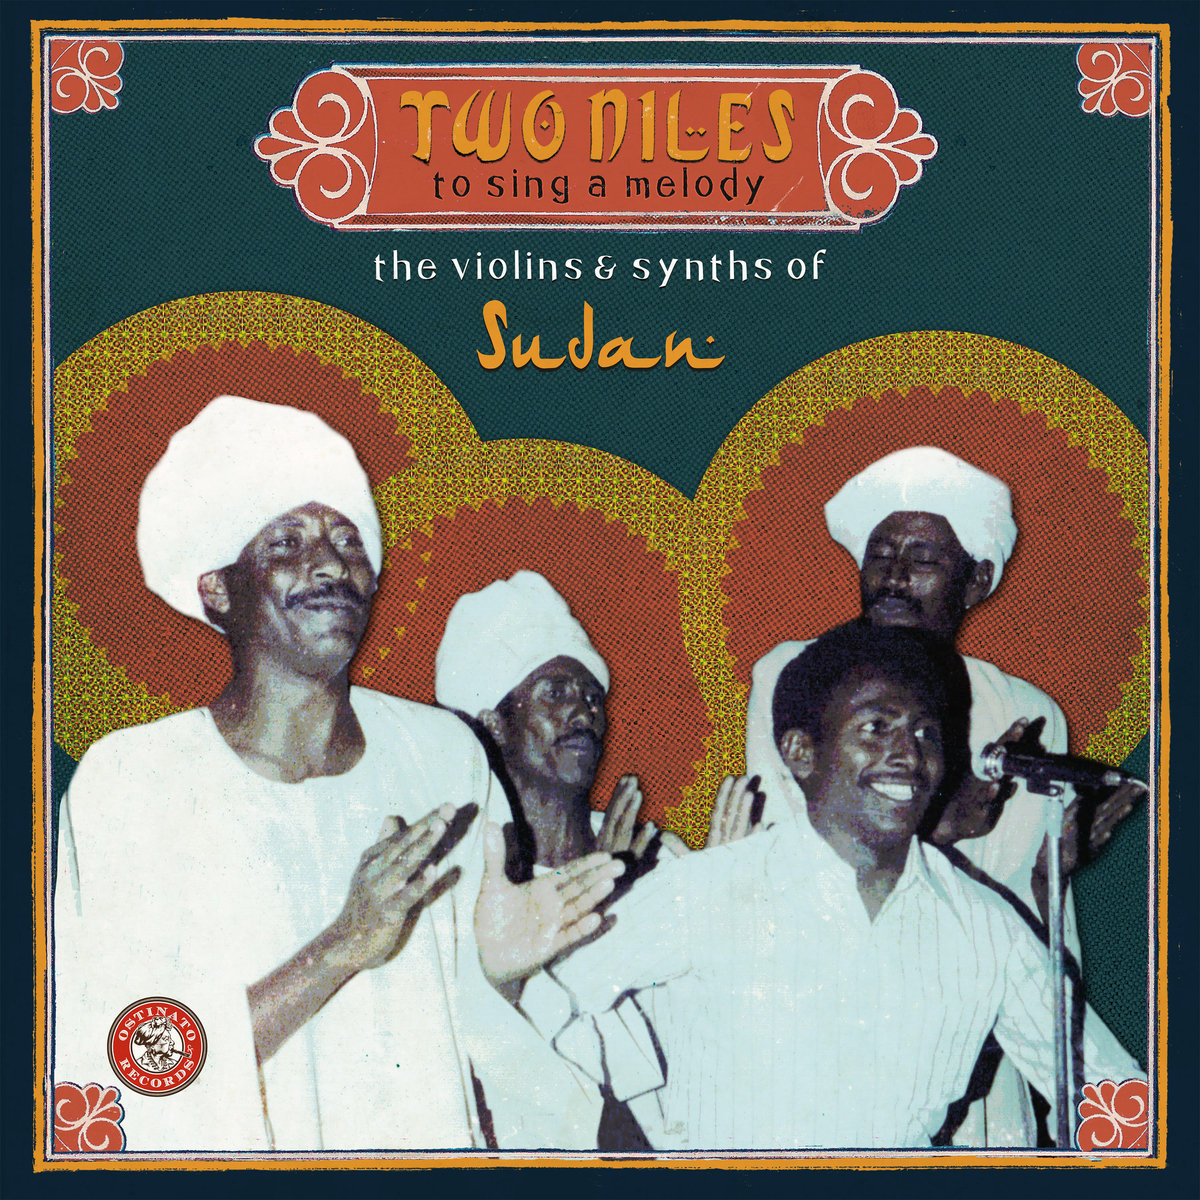 Various Artists - Two Niles to Sing a Melody: The Violins & Synths of Sudan  Release Date: September 14, 2018 Label: Ostinato Records  SERVICE: Mastering, Restoration NUMBER OF DISCS: 2 GENRE: Sudanese FORMAT: CD, LP